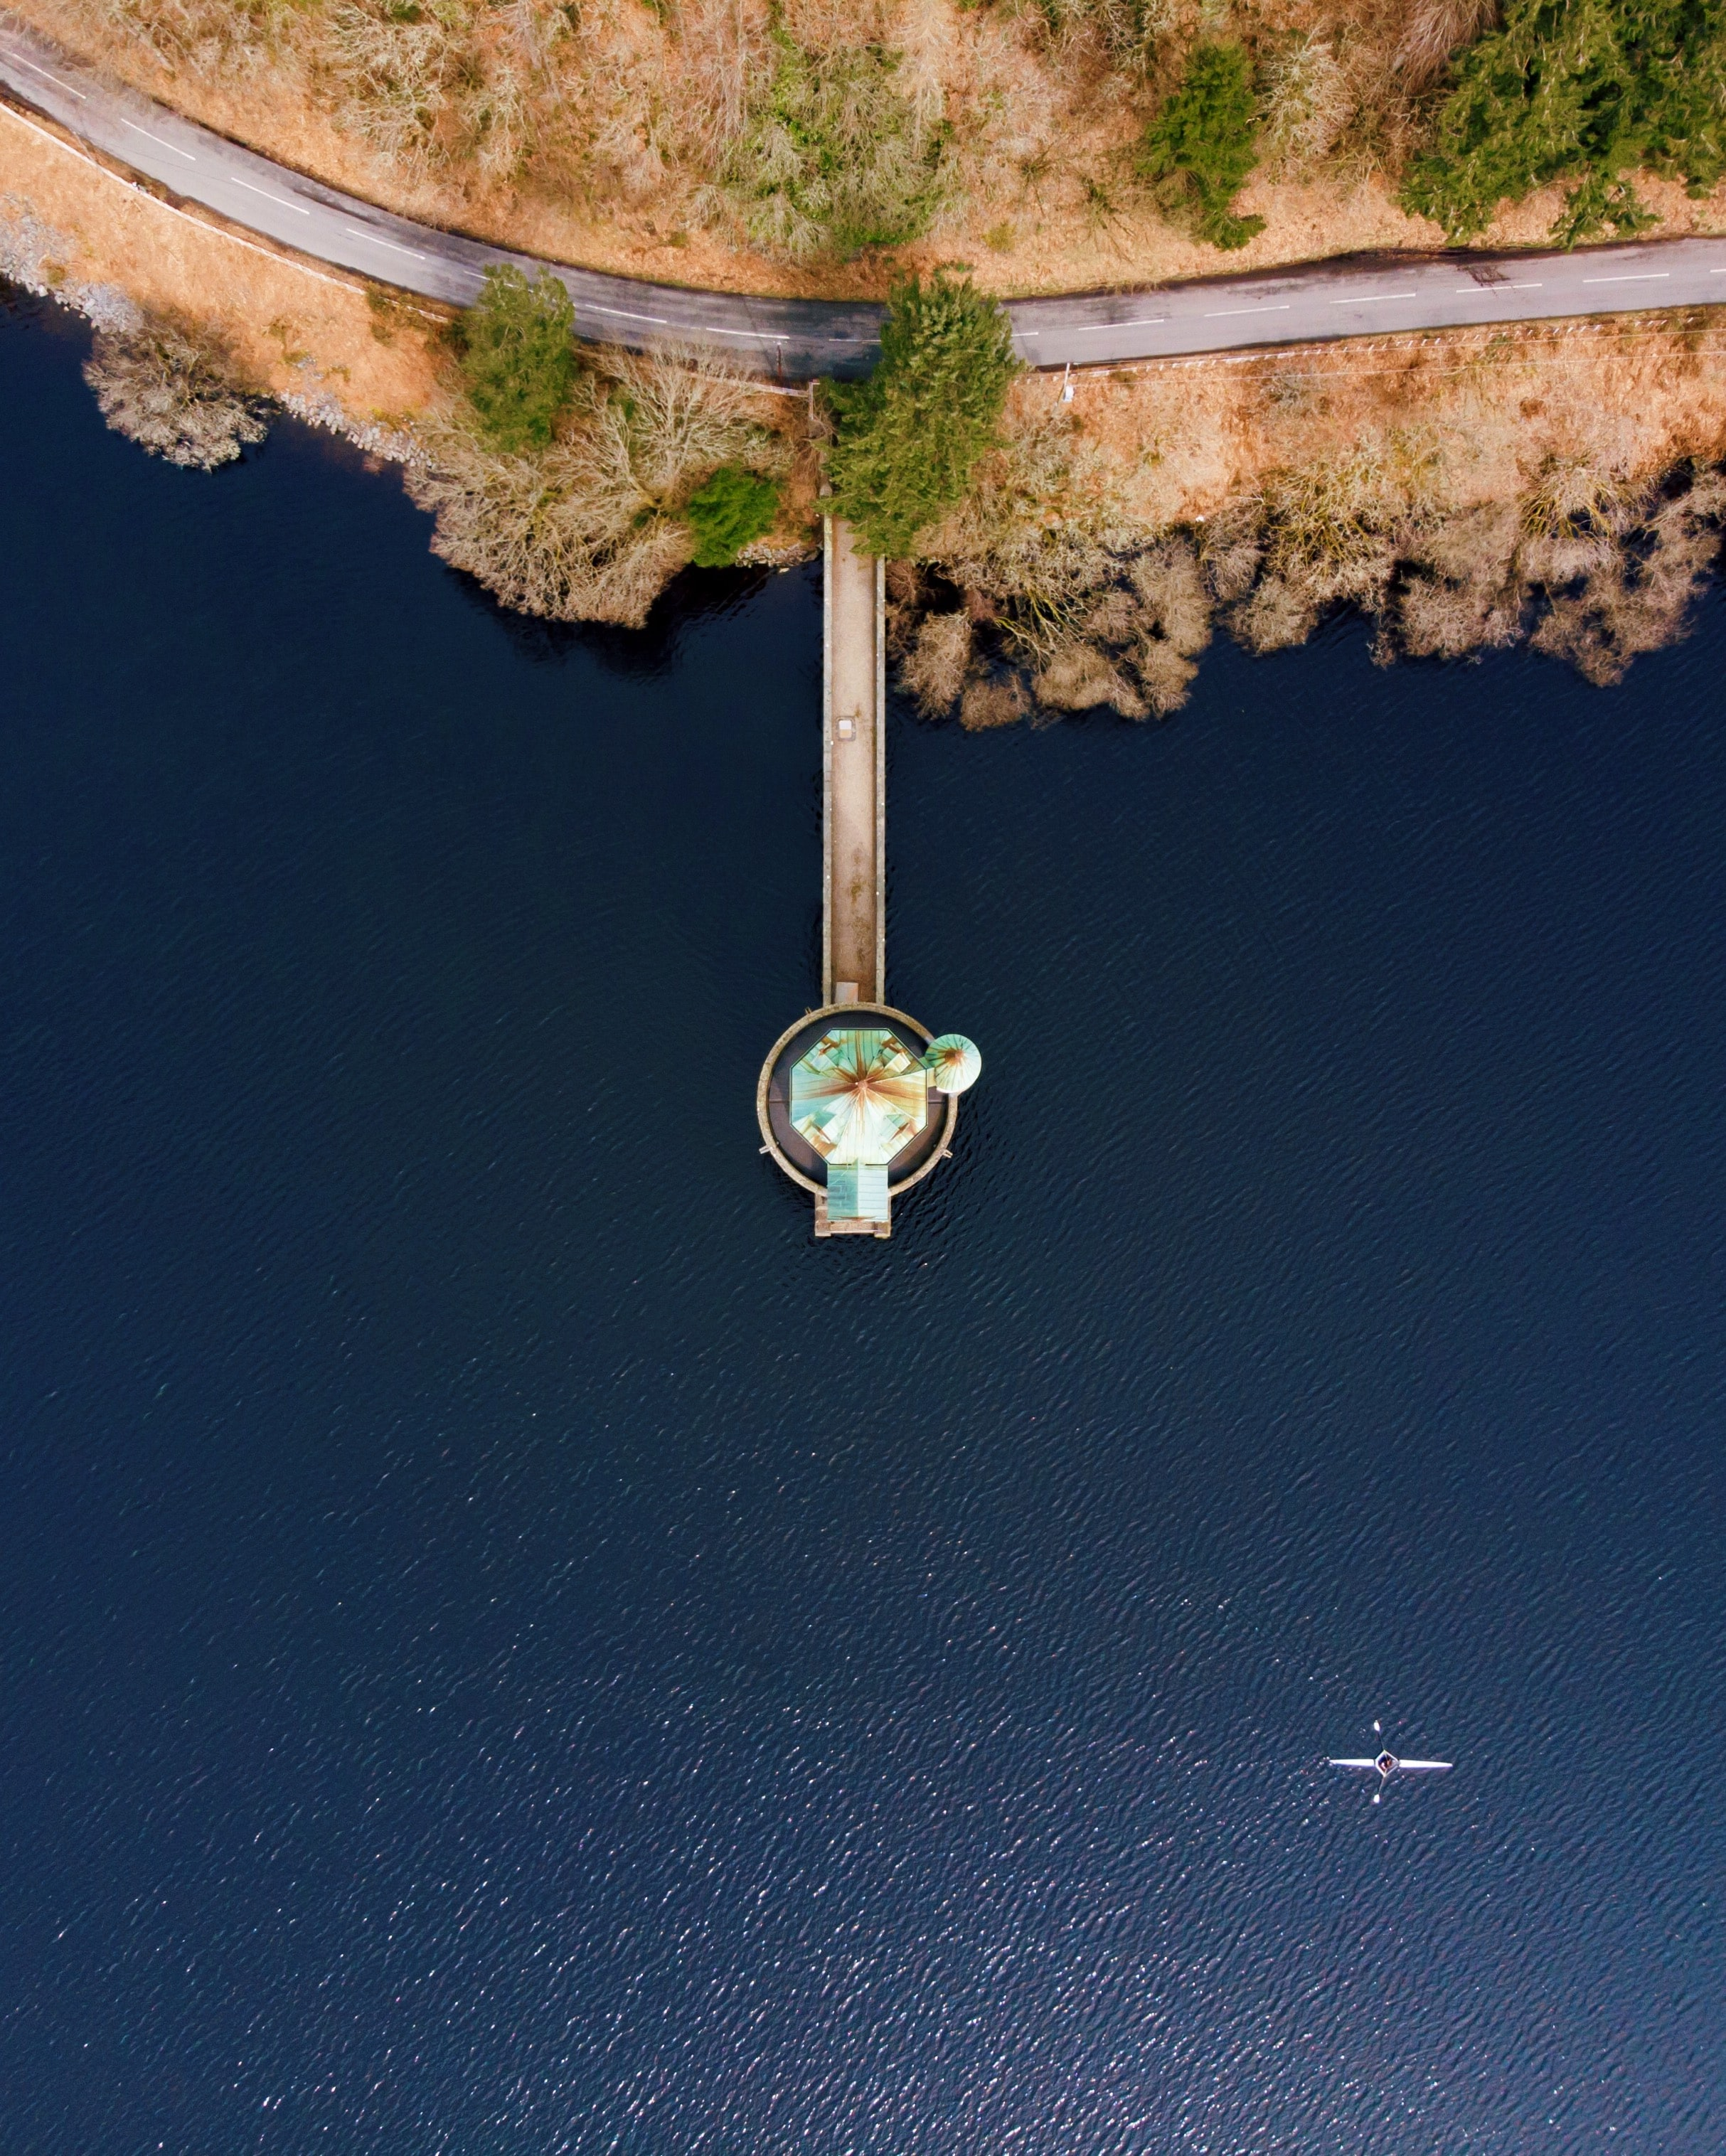 aerial view of dock on body of water beside island